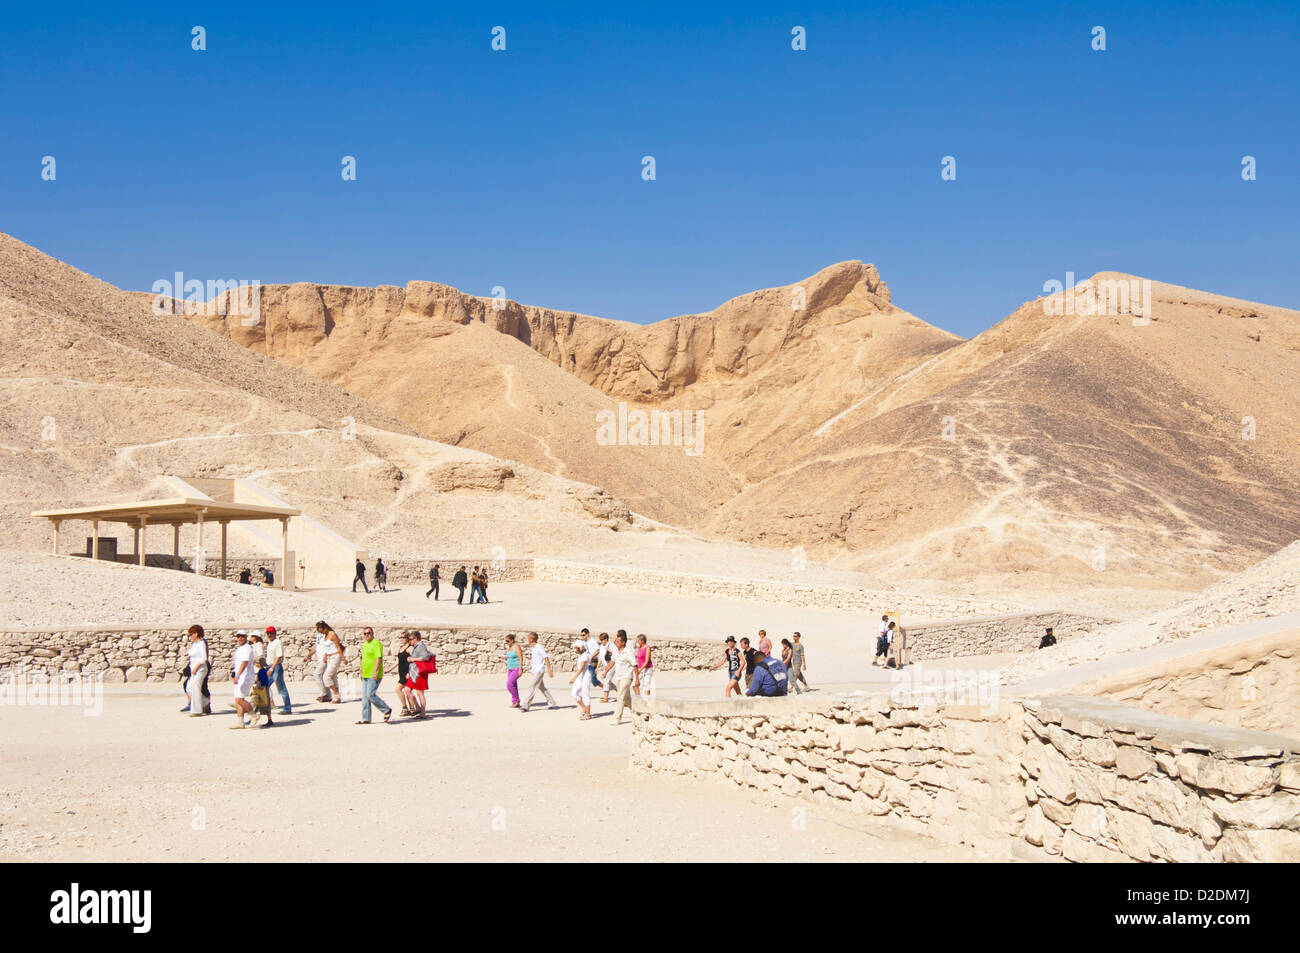 Entrance to the tomb of the pharaoh Rameses IV Valley of the Kings West bank of the river Nile near Luxor Egypt - Stock Image